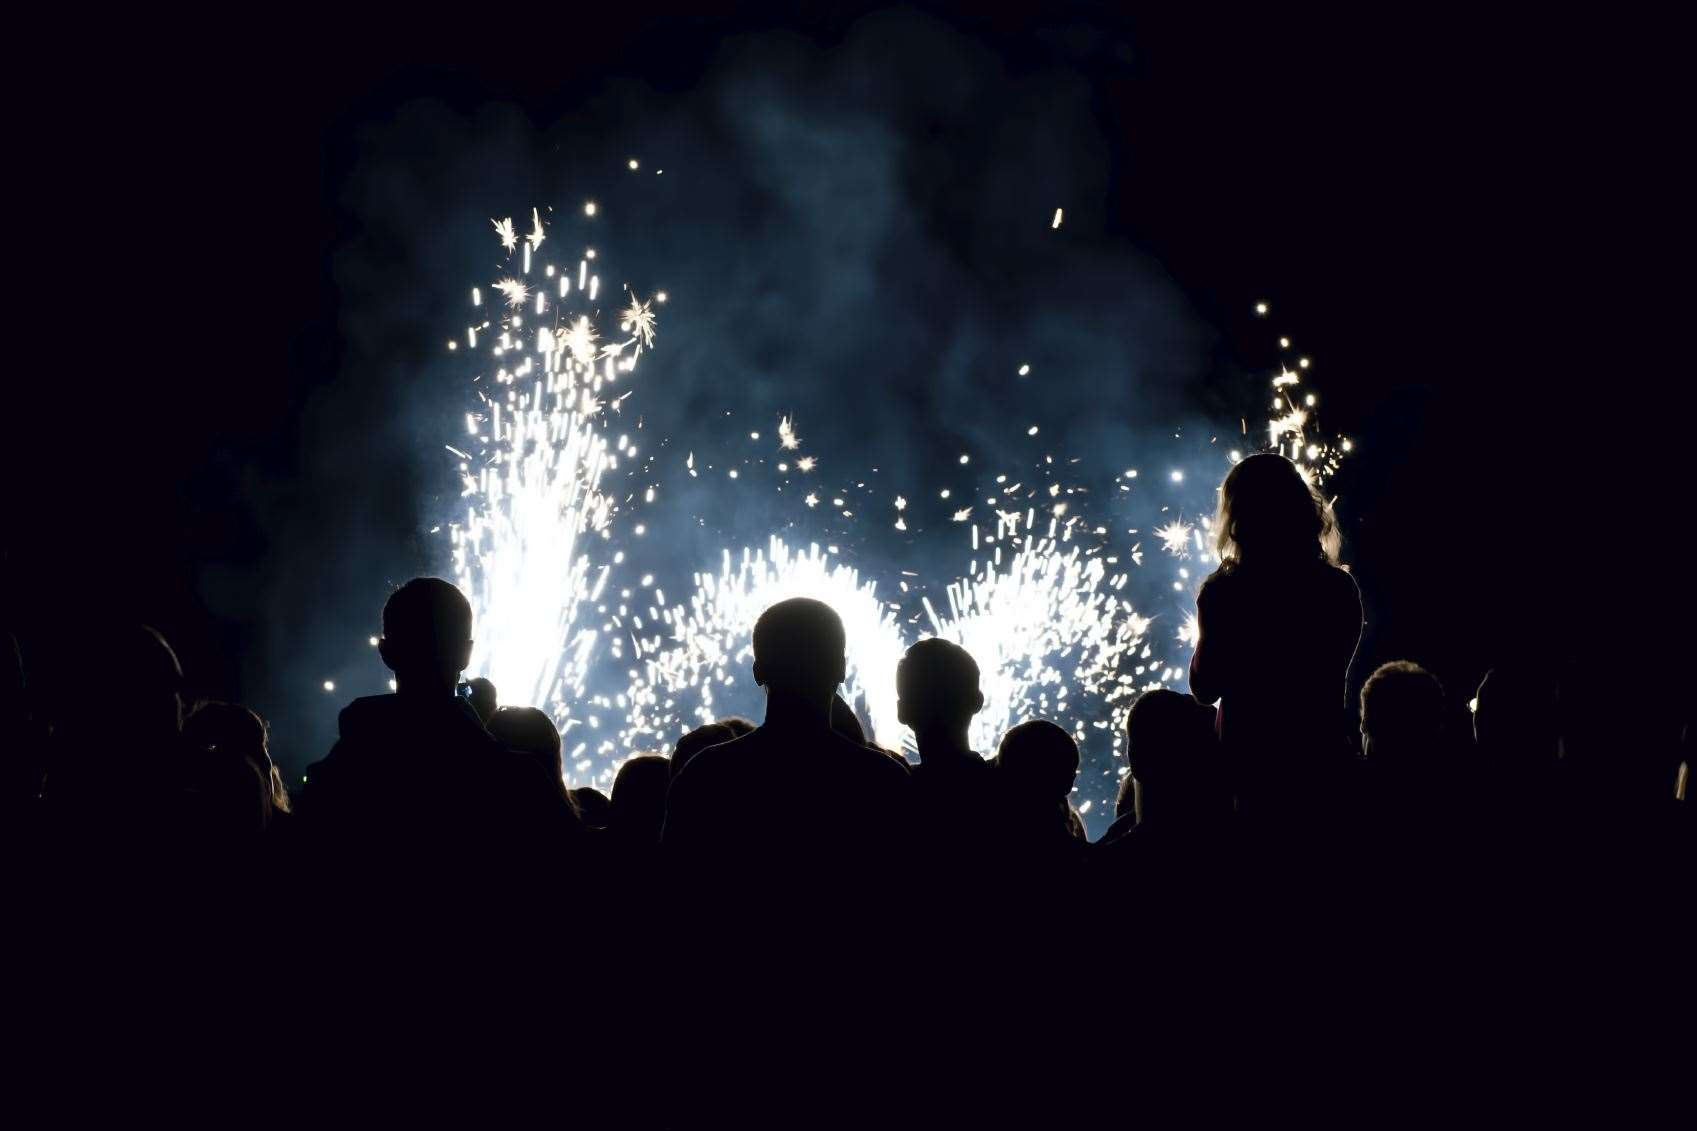 There's still time to take the families to see fireworks in Kent